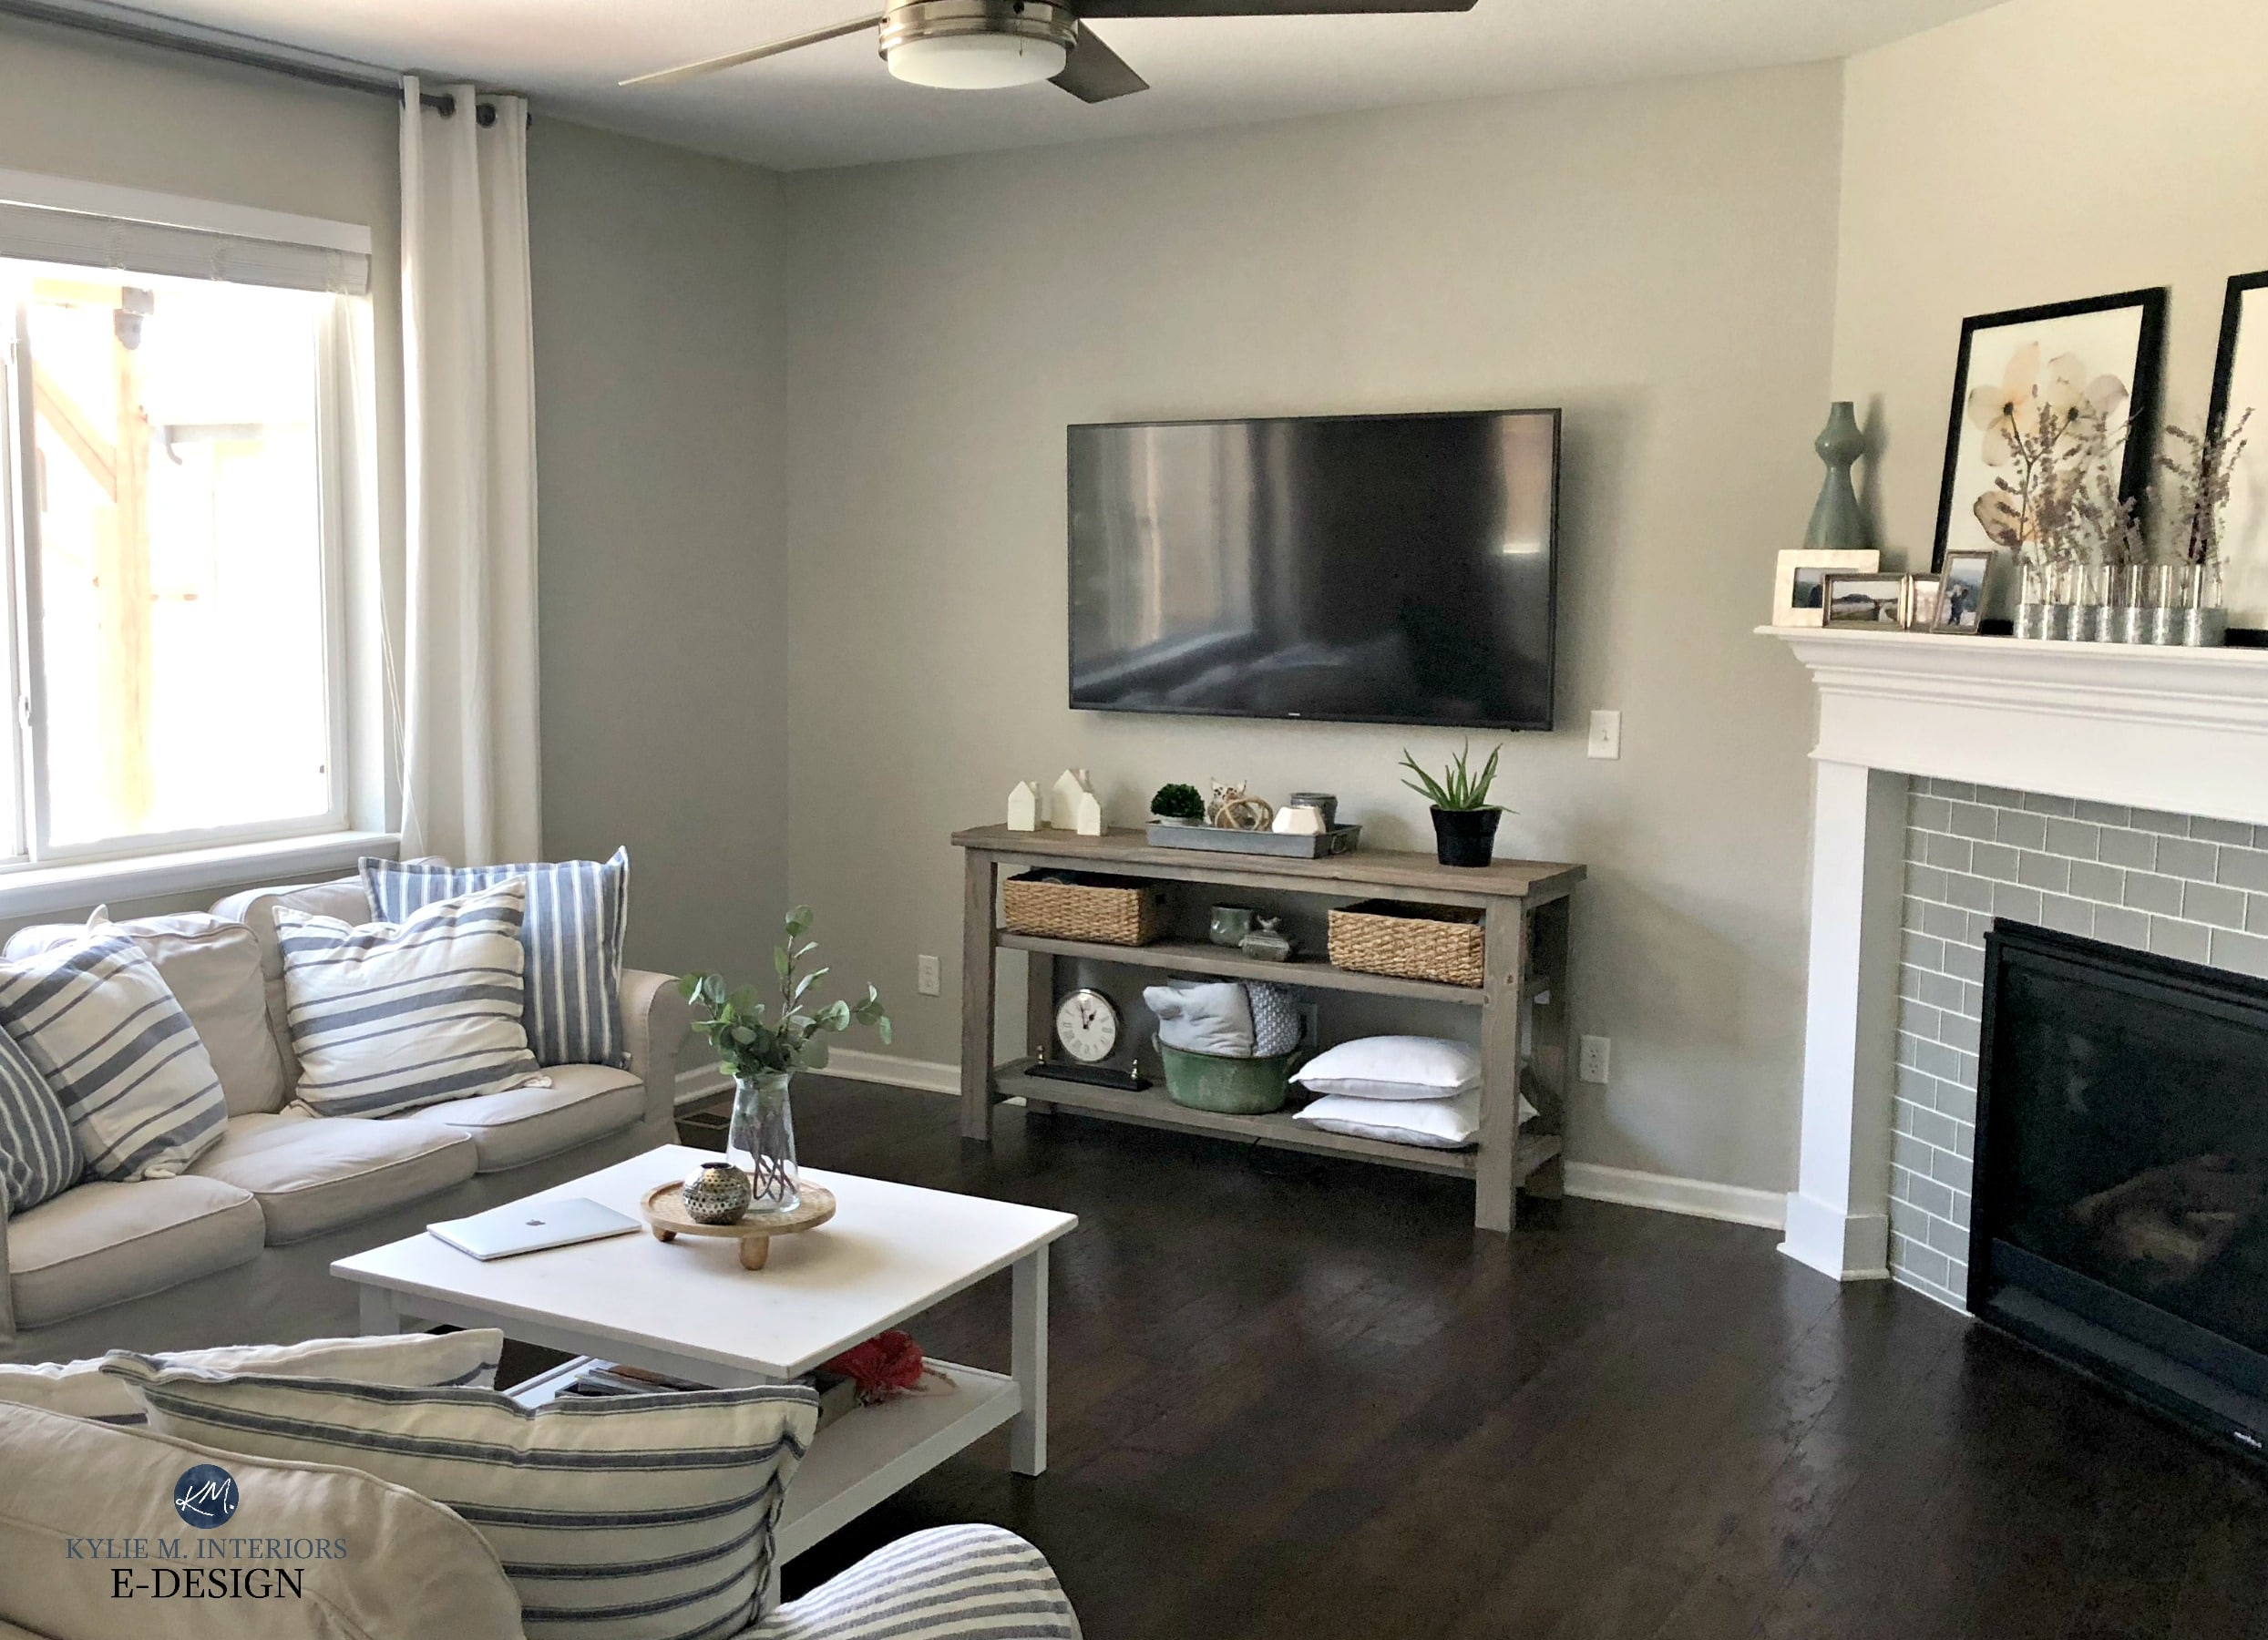 Sherwin williams repose gray in family or living room - Grey paint living room ...